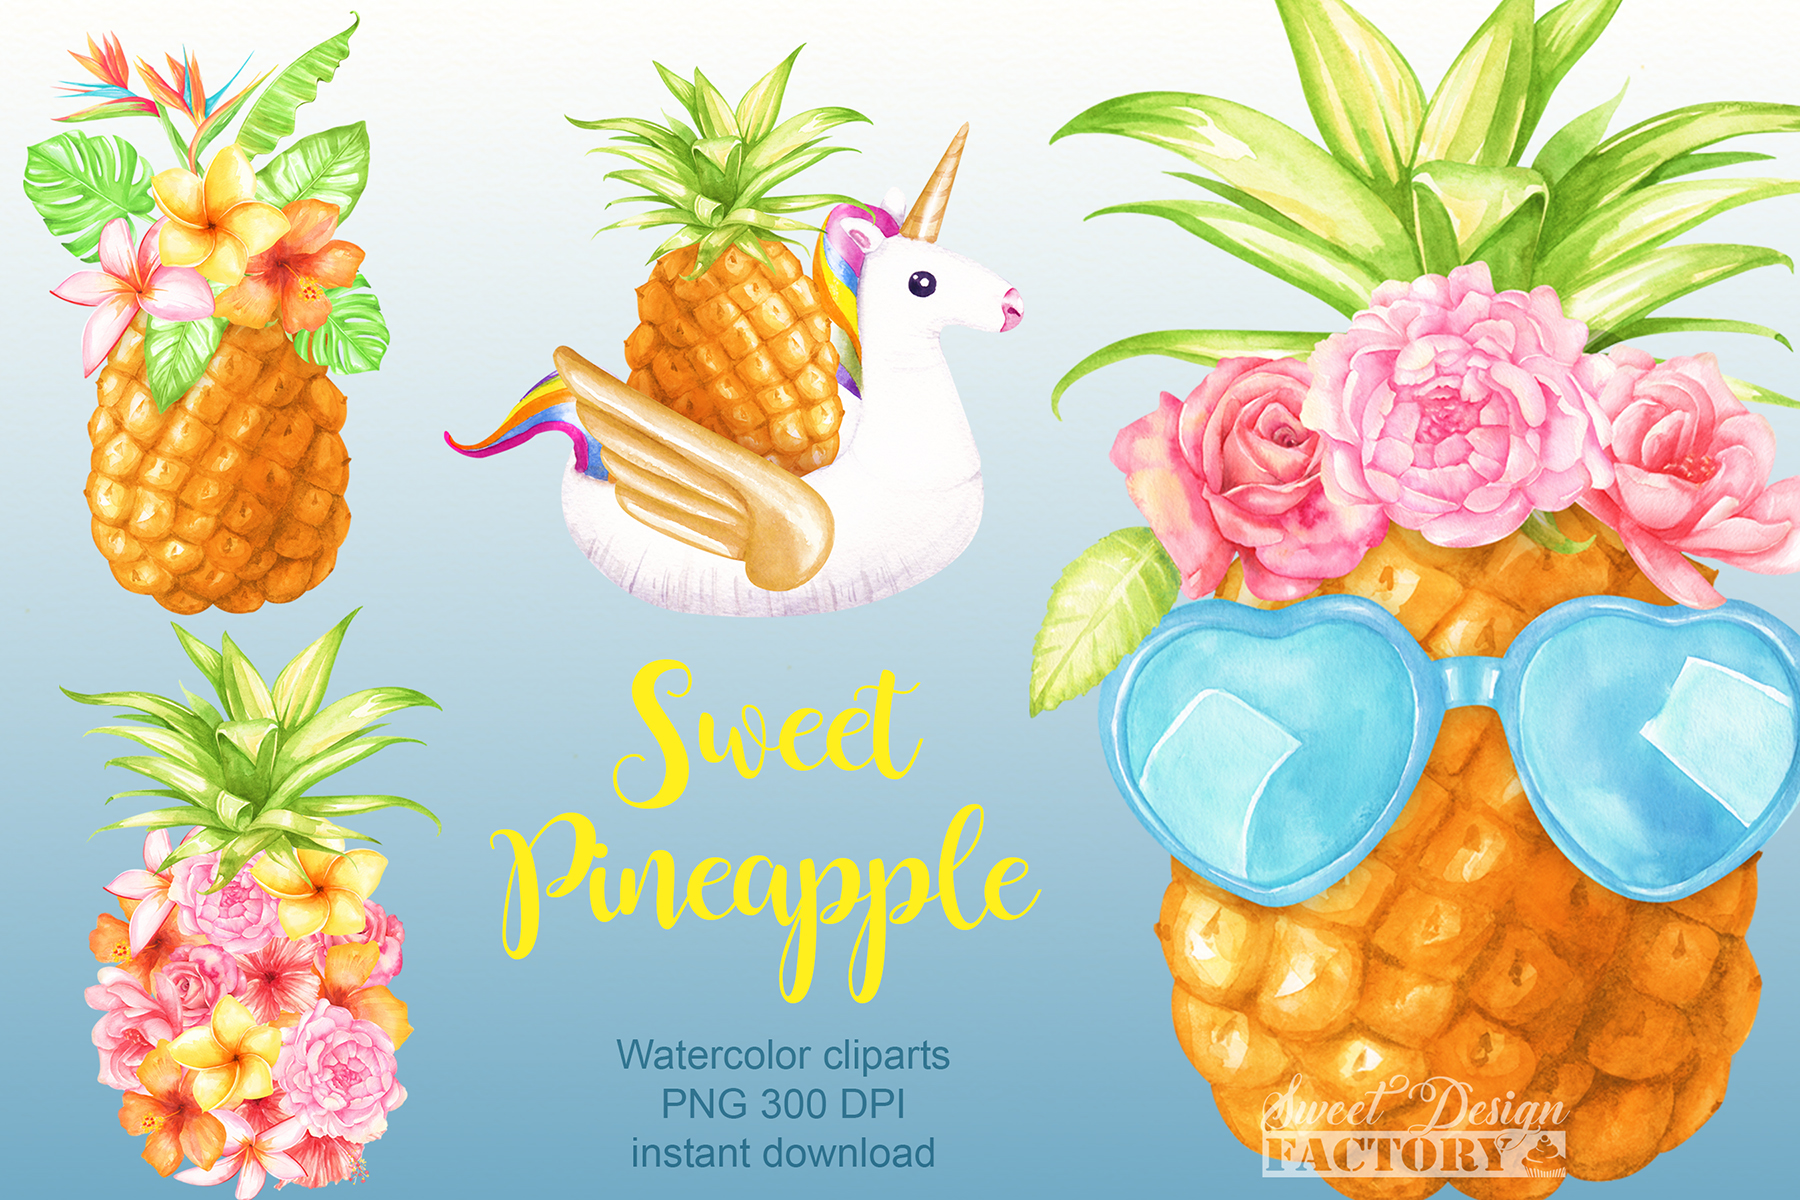 Watercolor pineapple clipart example image 1